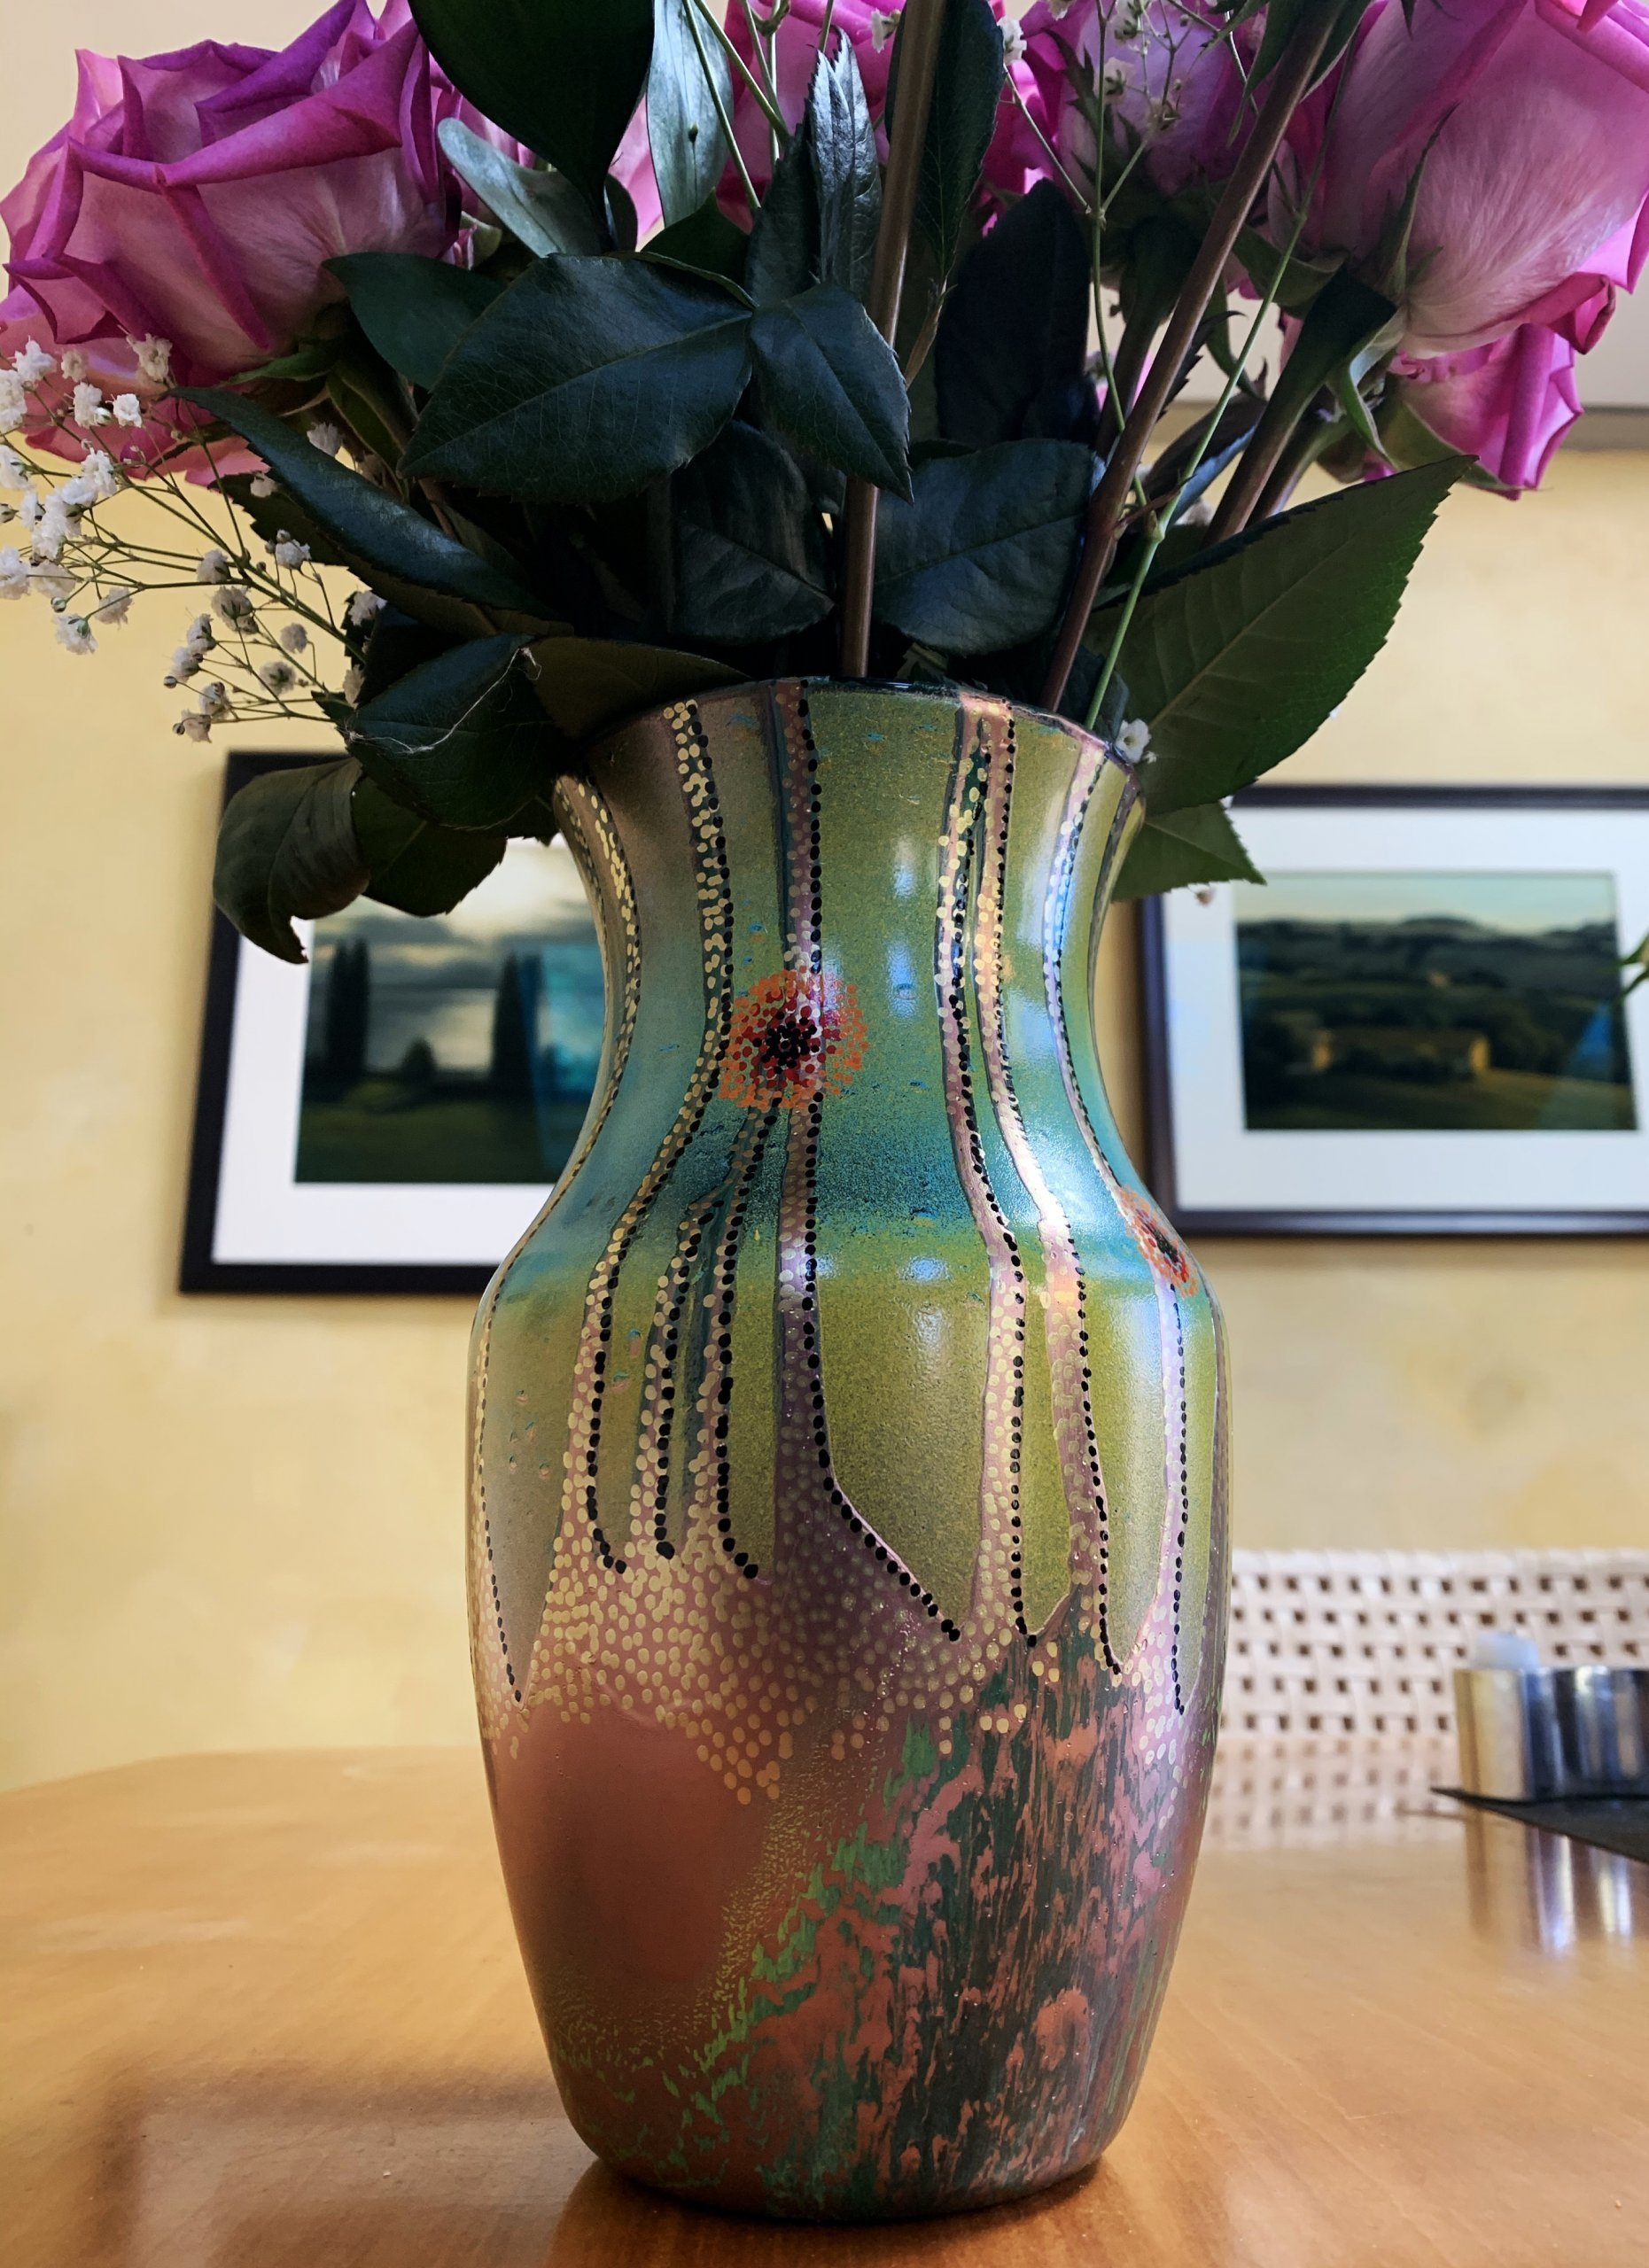 Decorative vase, enamel on glass by Vitek Kruta. $85.00